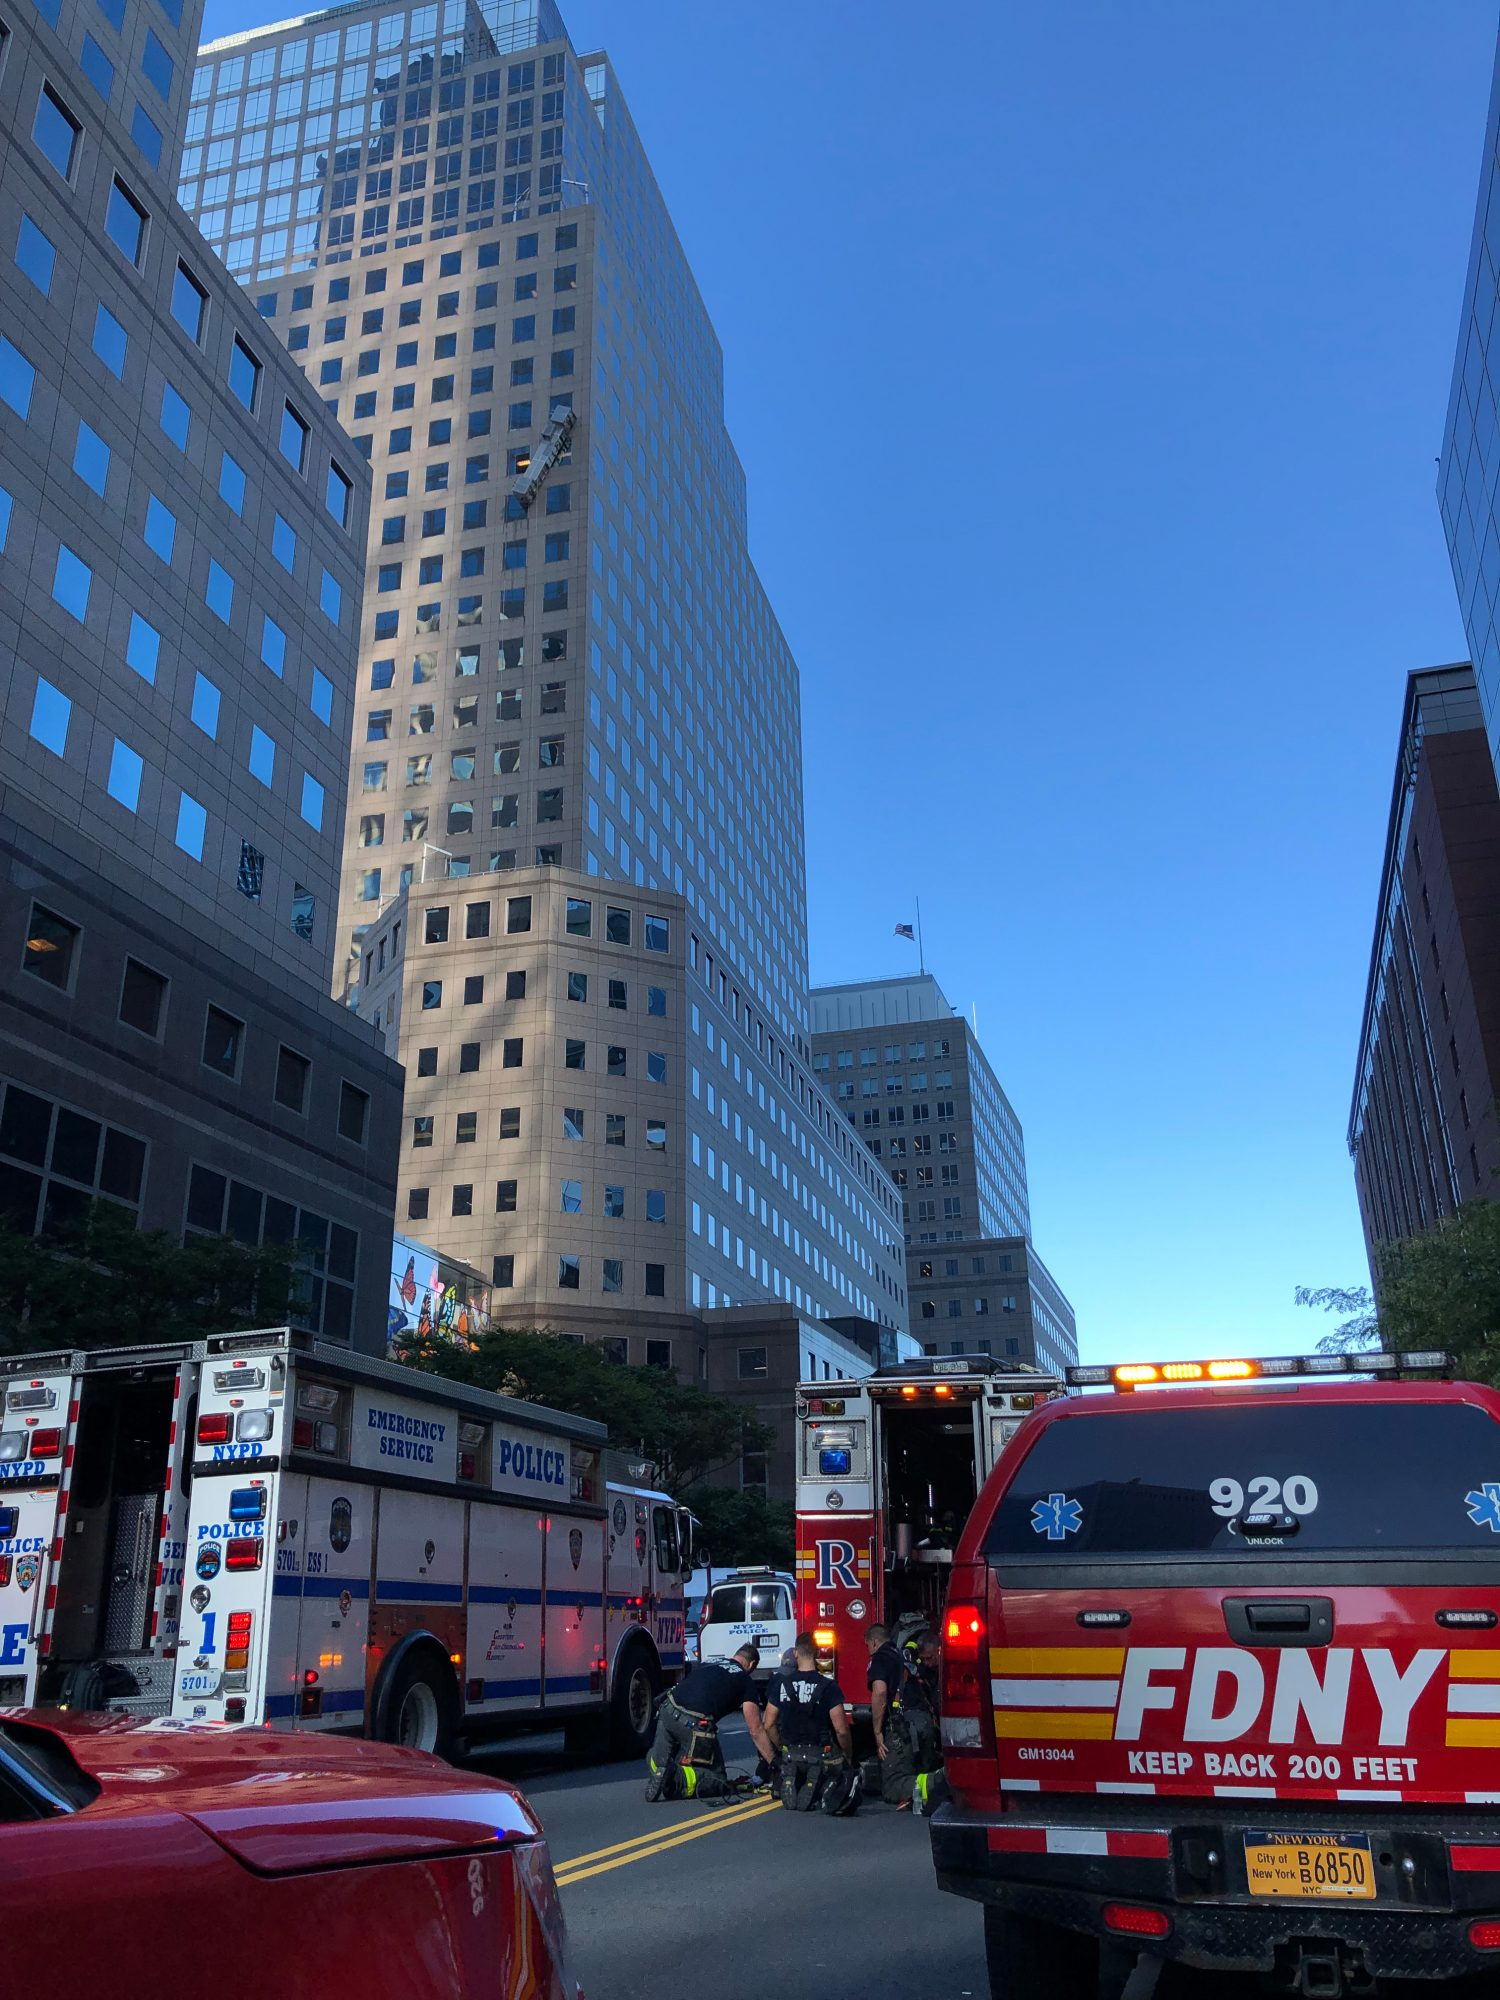 FDNY members rescued two workers from an off-level hanging scaffold this morning in Manhattan.